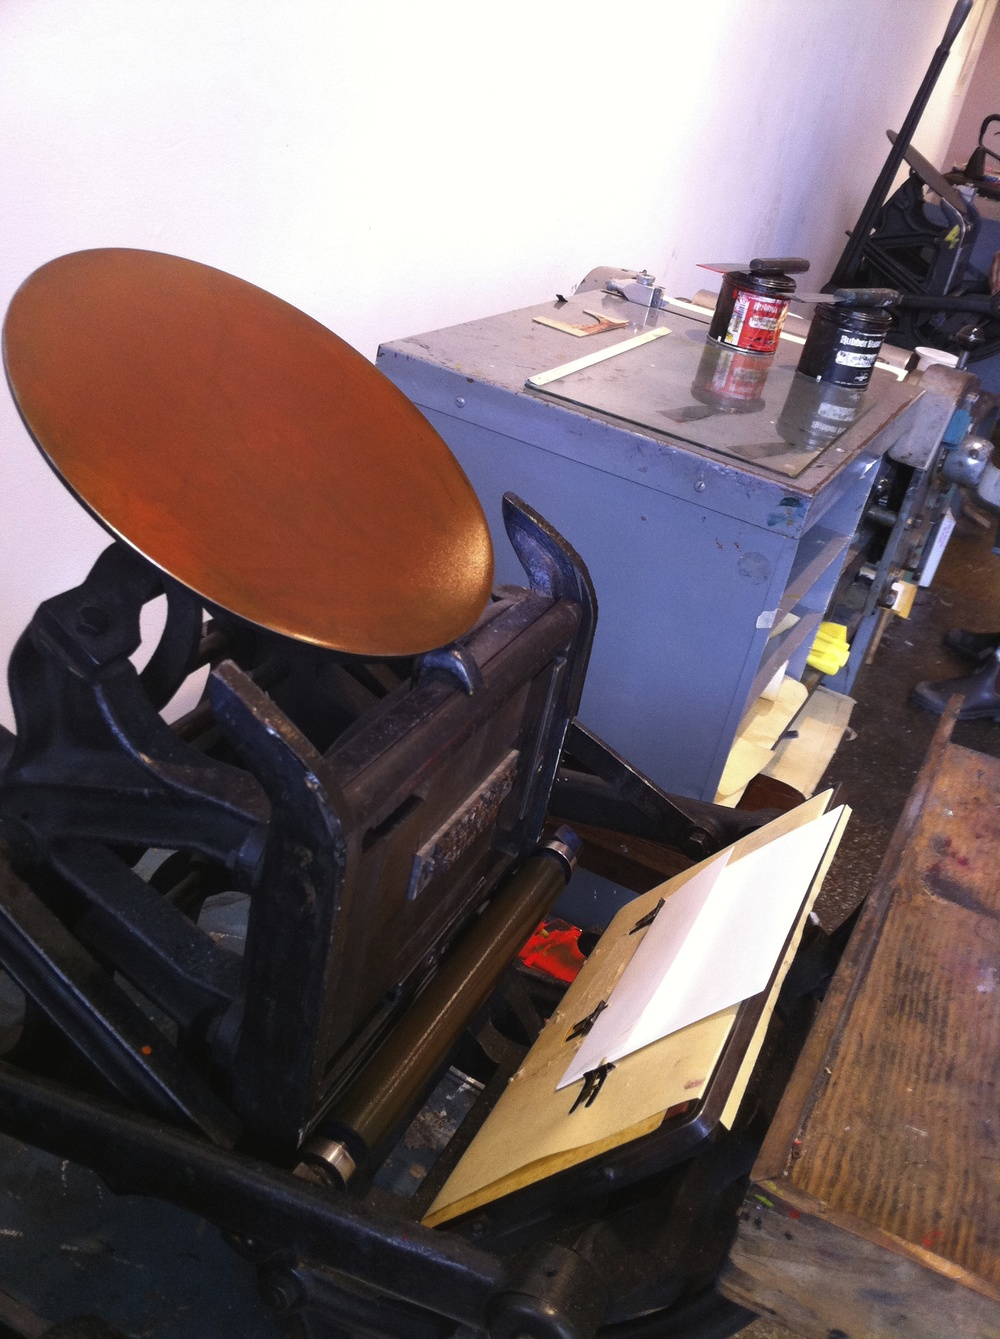 Here is the C&P Pilot platen letterpress at The Arm letterpress collective in Williamsburg on which we have printed our business cards, as well as one-off broadsides, mini coinsides and other projects.